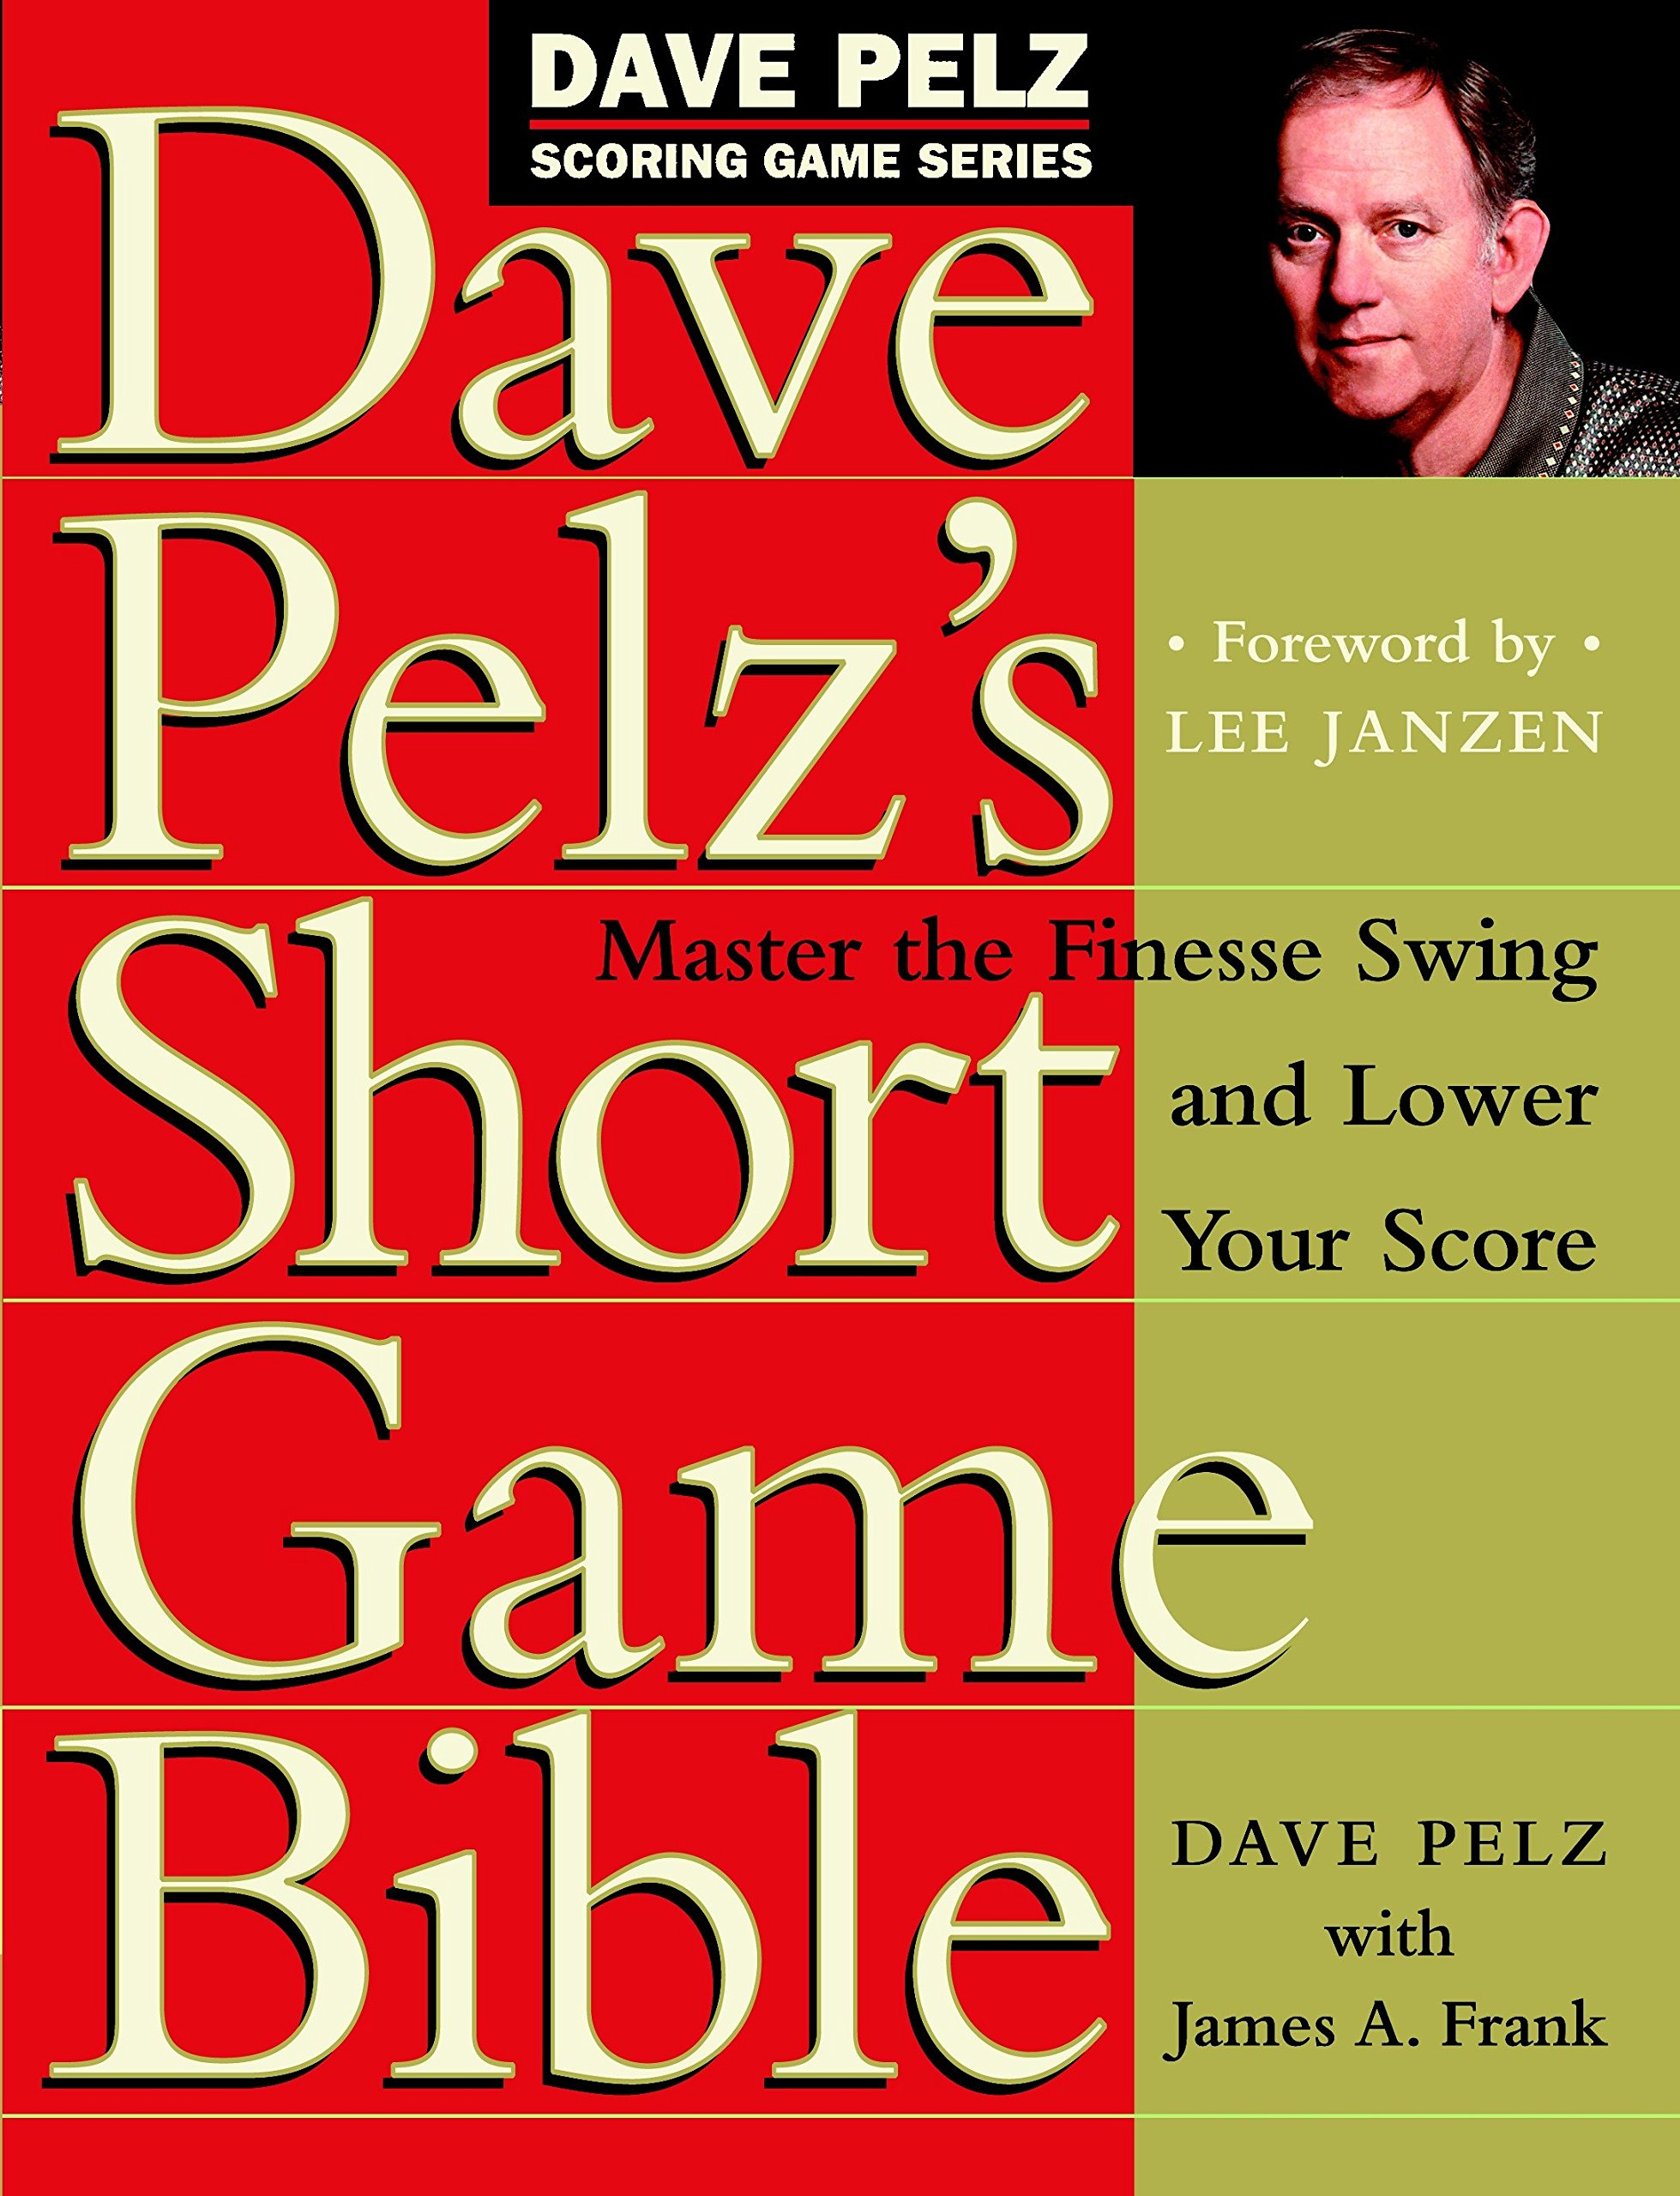 Buy Dave Pelz's Short Game Bible: Master the Finesse Swing and Lower Your  Score (Dave Pelz Scoring Game) Book Online at Low Prices in India | Dave  Pelz's ...